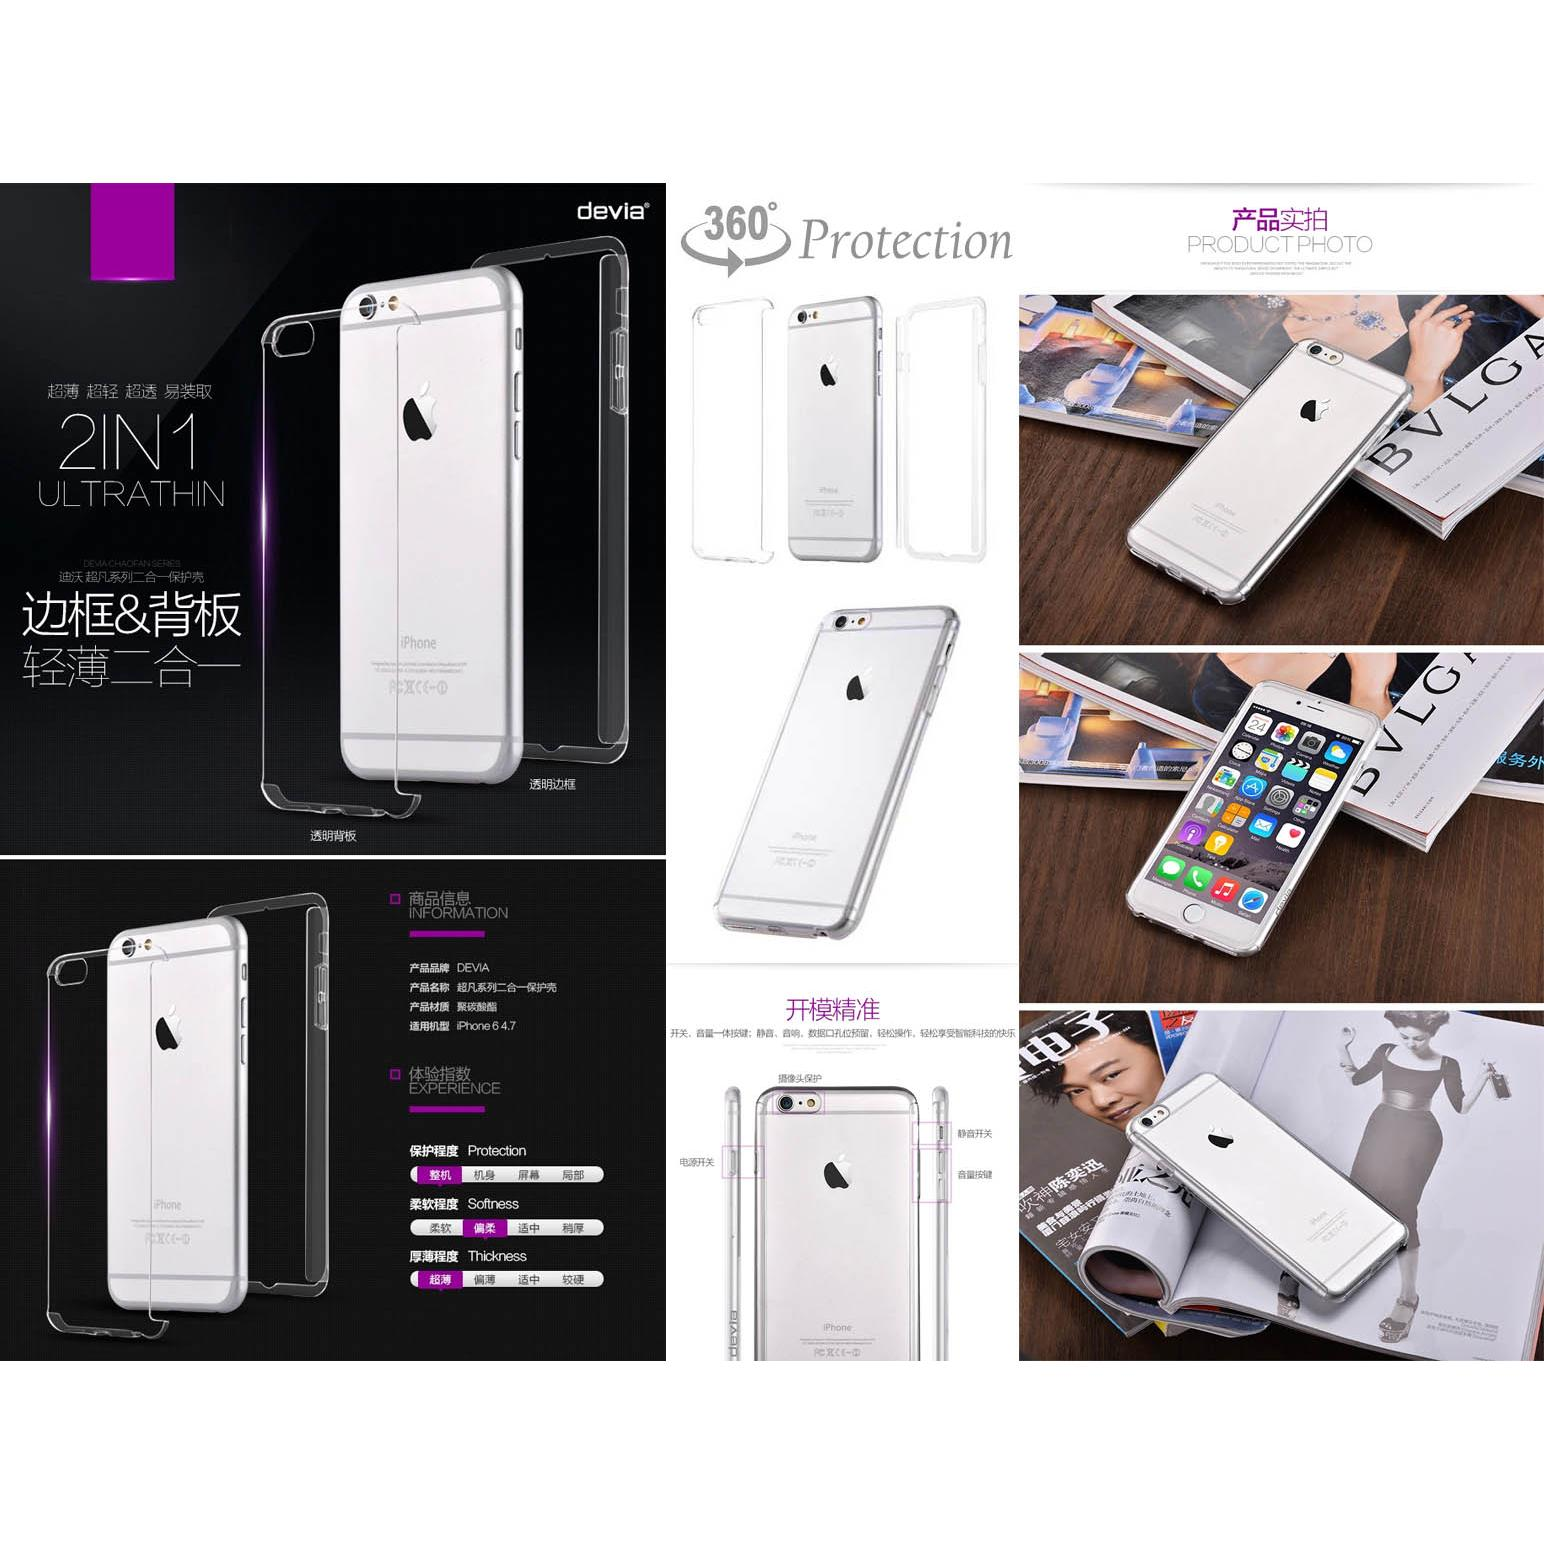 Devia Shell 2 In 1 Case Iphone 6 Plus Elevenia Samsung Galaxy J5 2016 Garansi Resmi Tahun Sein Bundling Tau Telkomsel